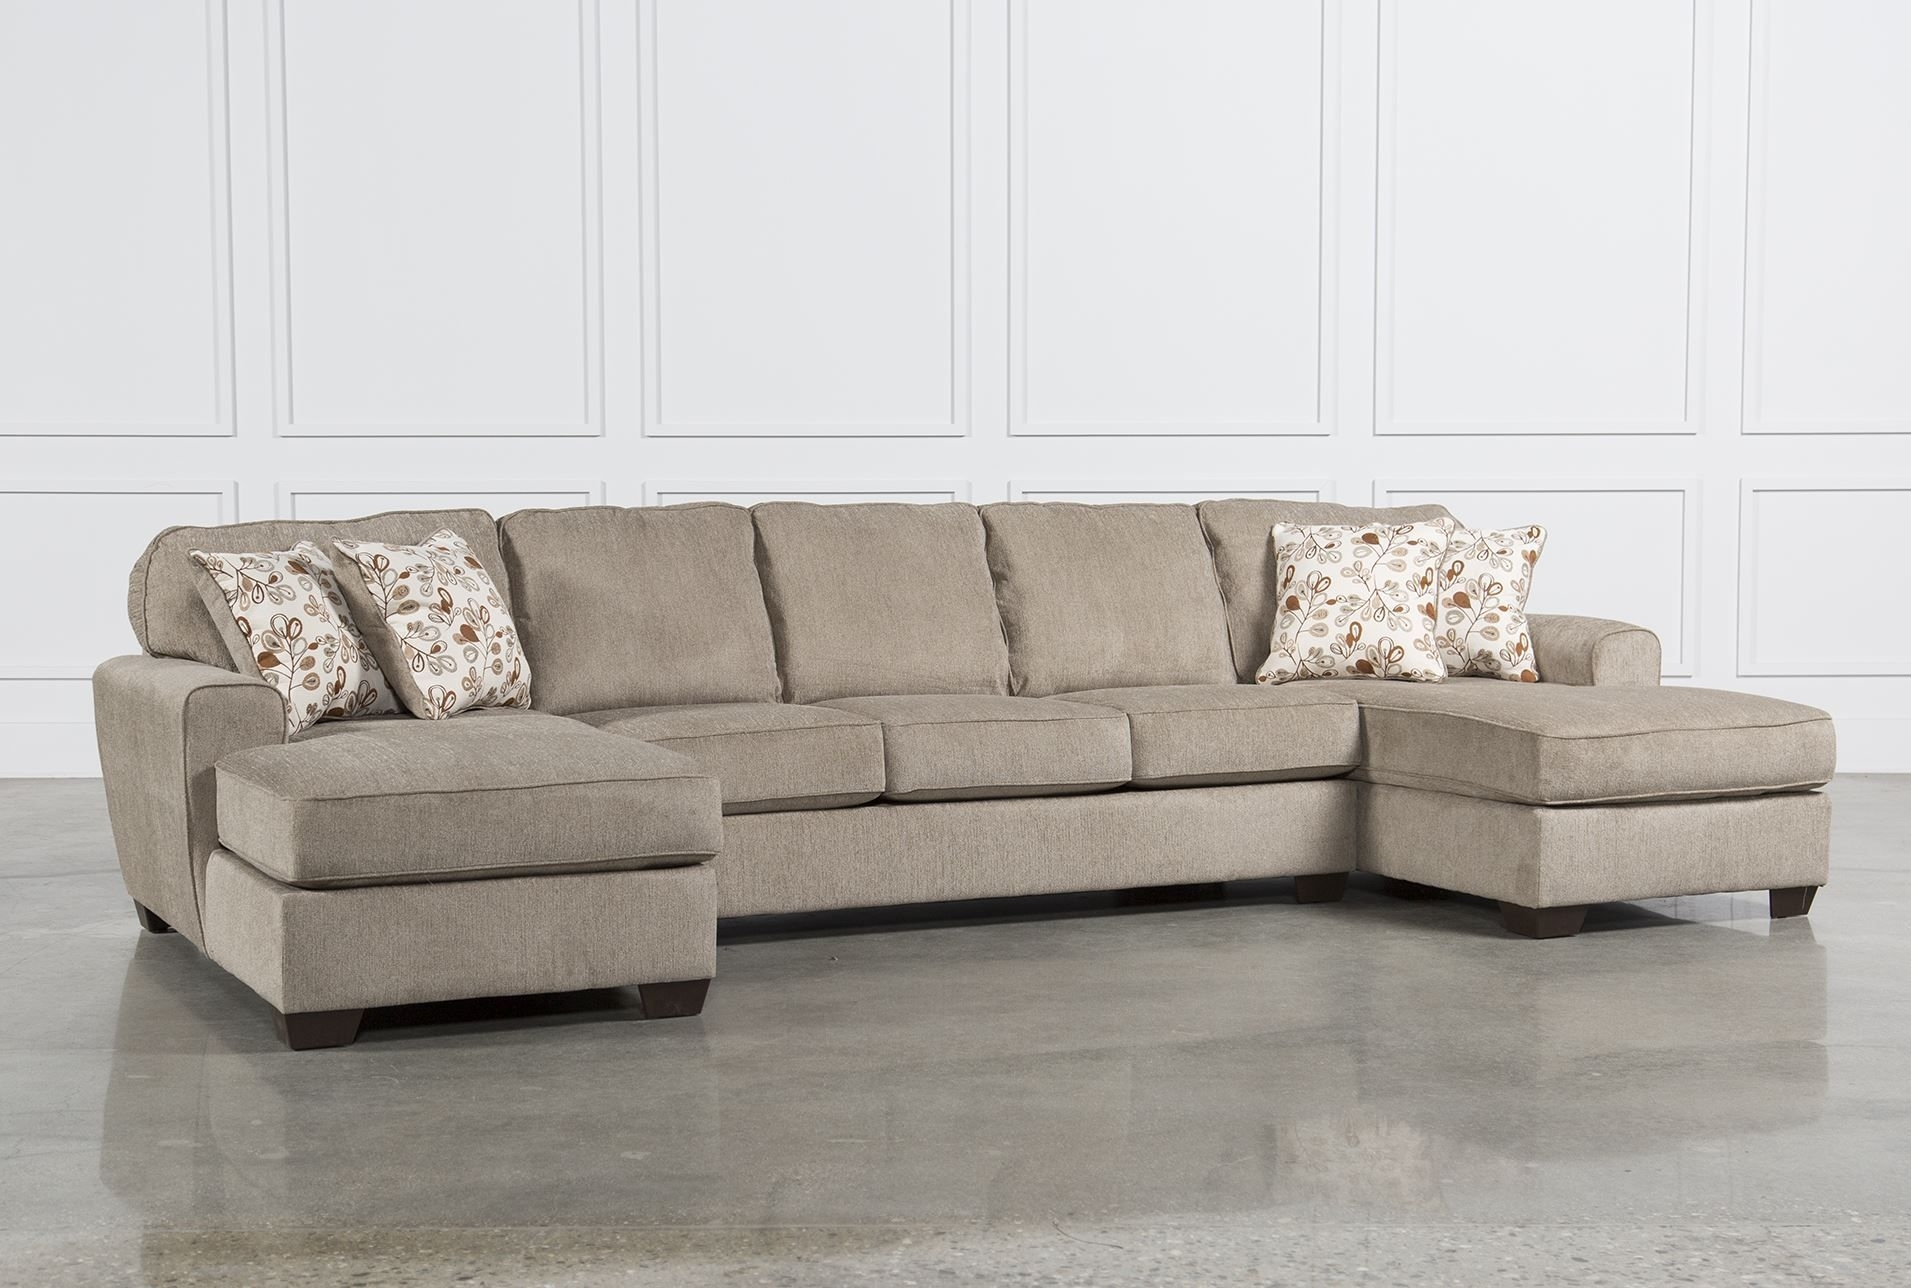 Patola Park 3 Piece Sectional W/2 Corner Chaises | Mountain Modern Regarding Malbry Point 3 Piece Sectionals With Raf Chaise (View 6 of 30)